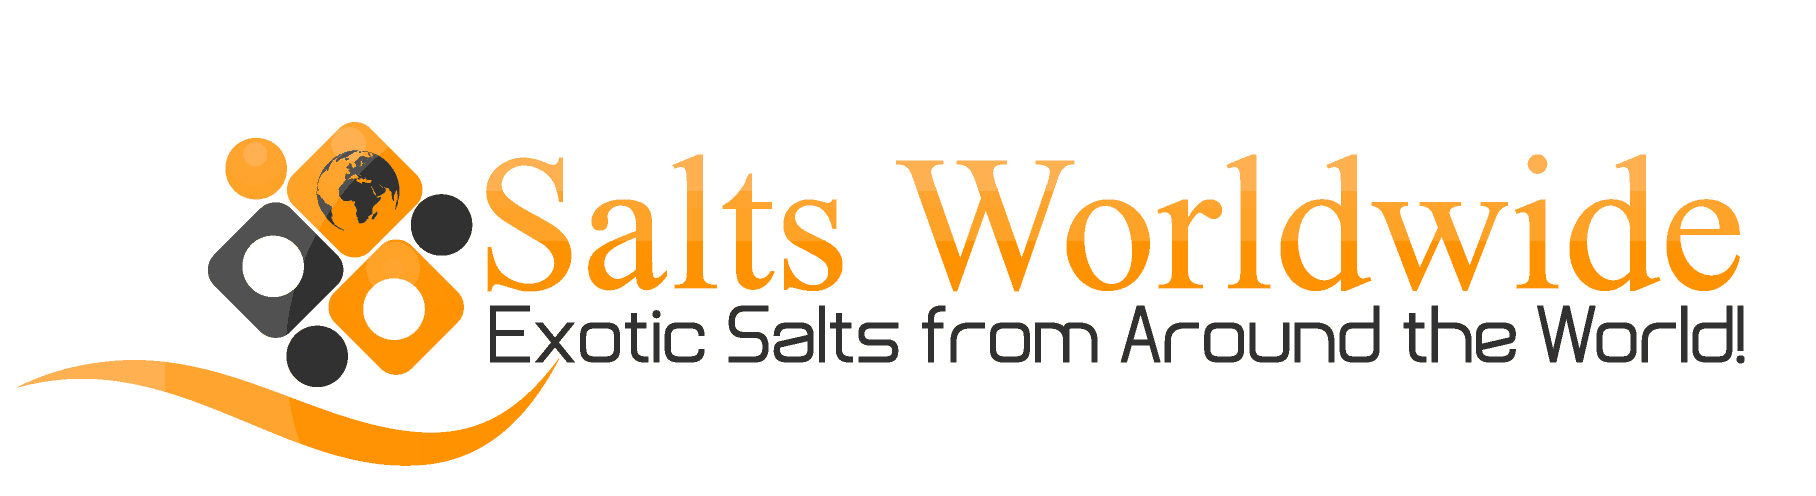 Salts Worldwide